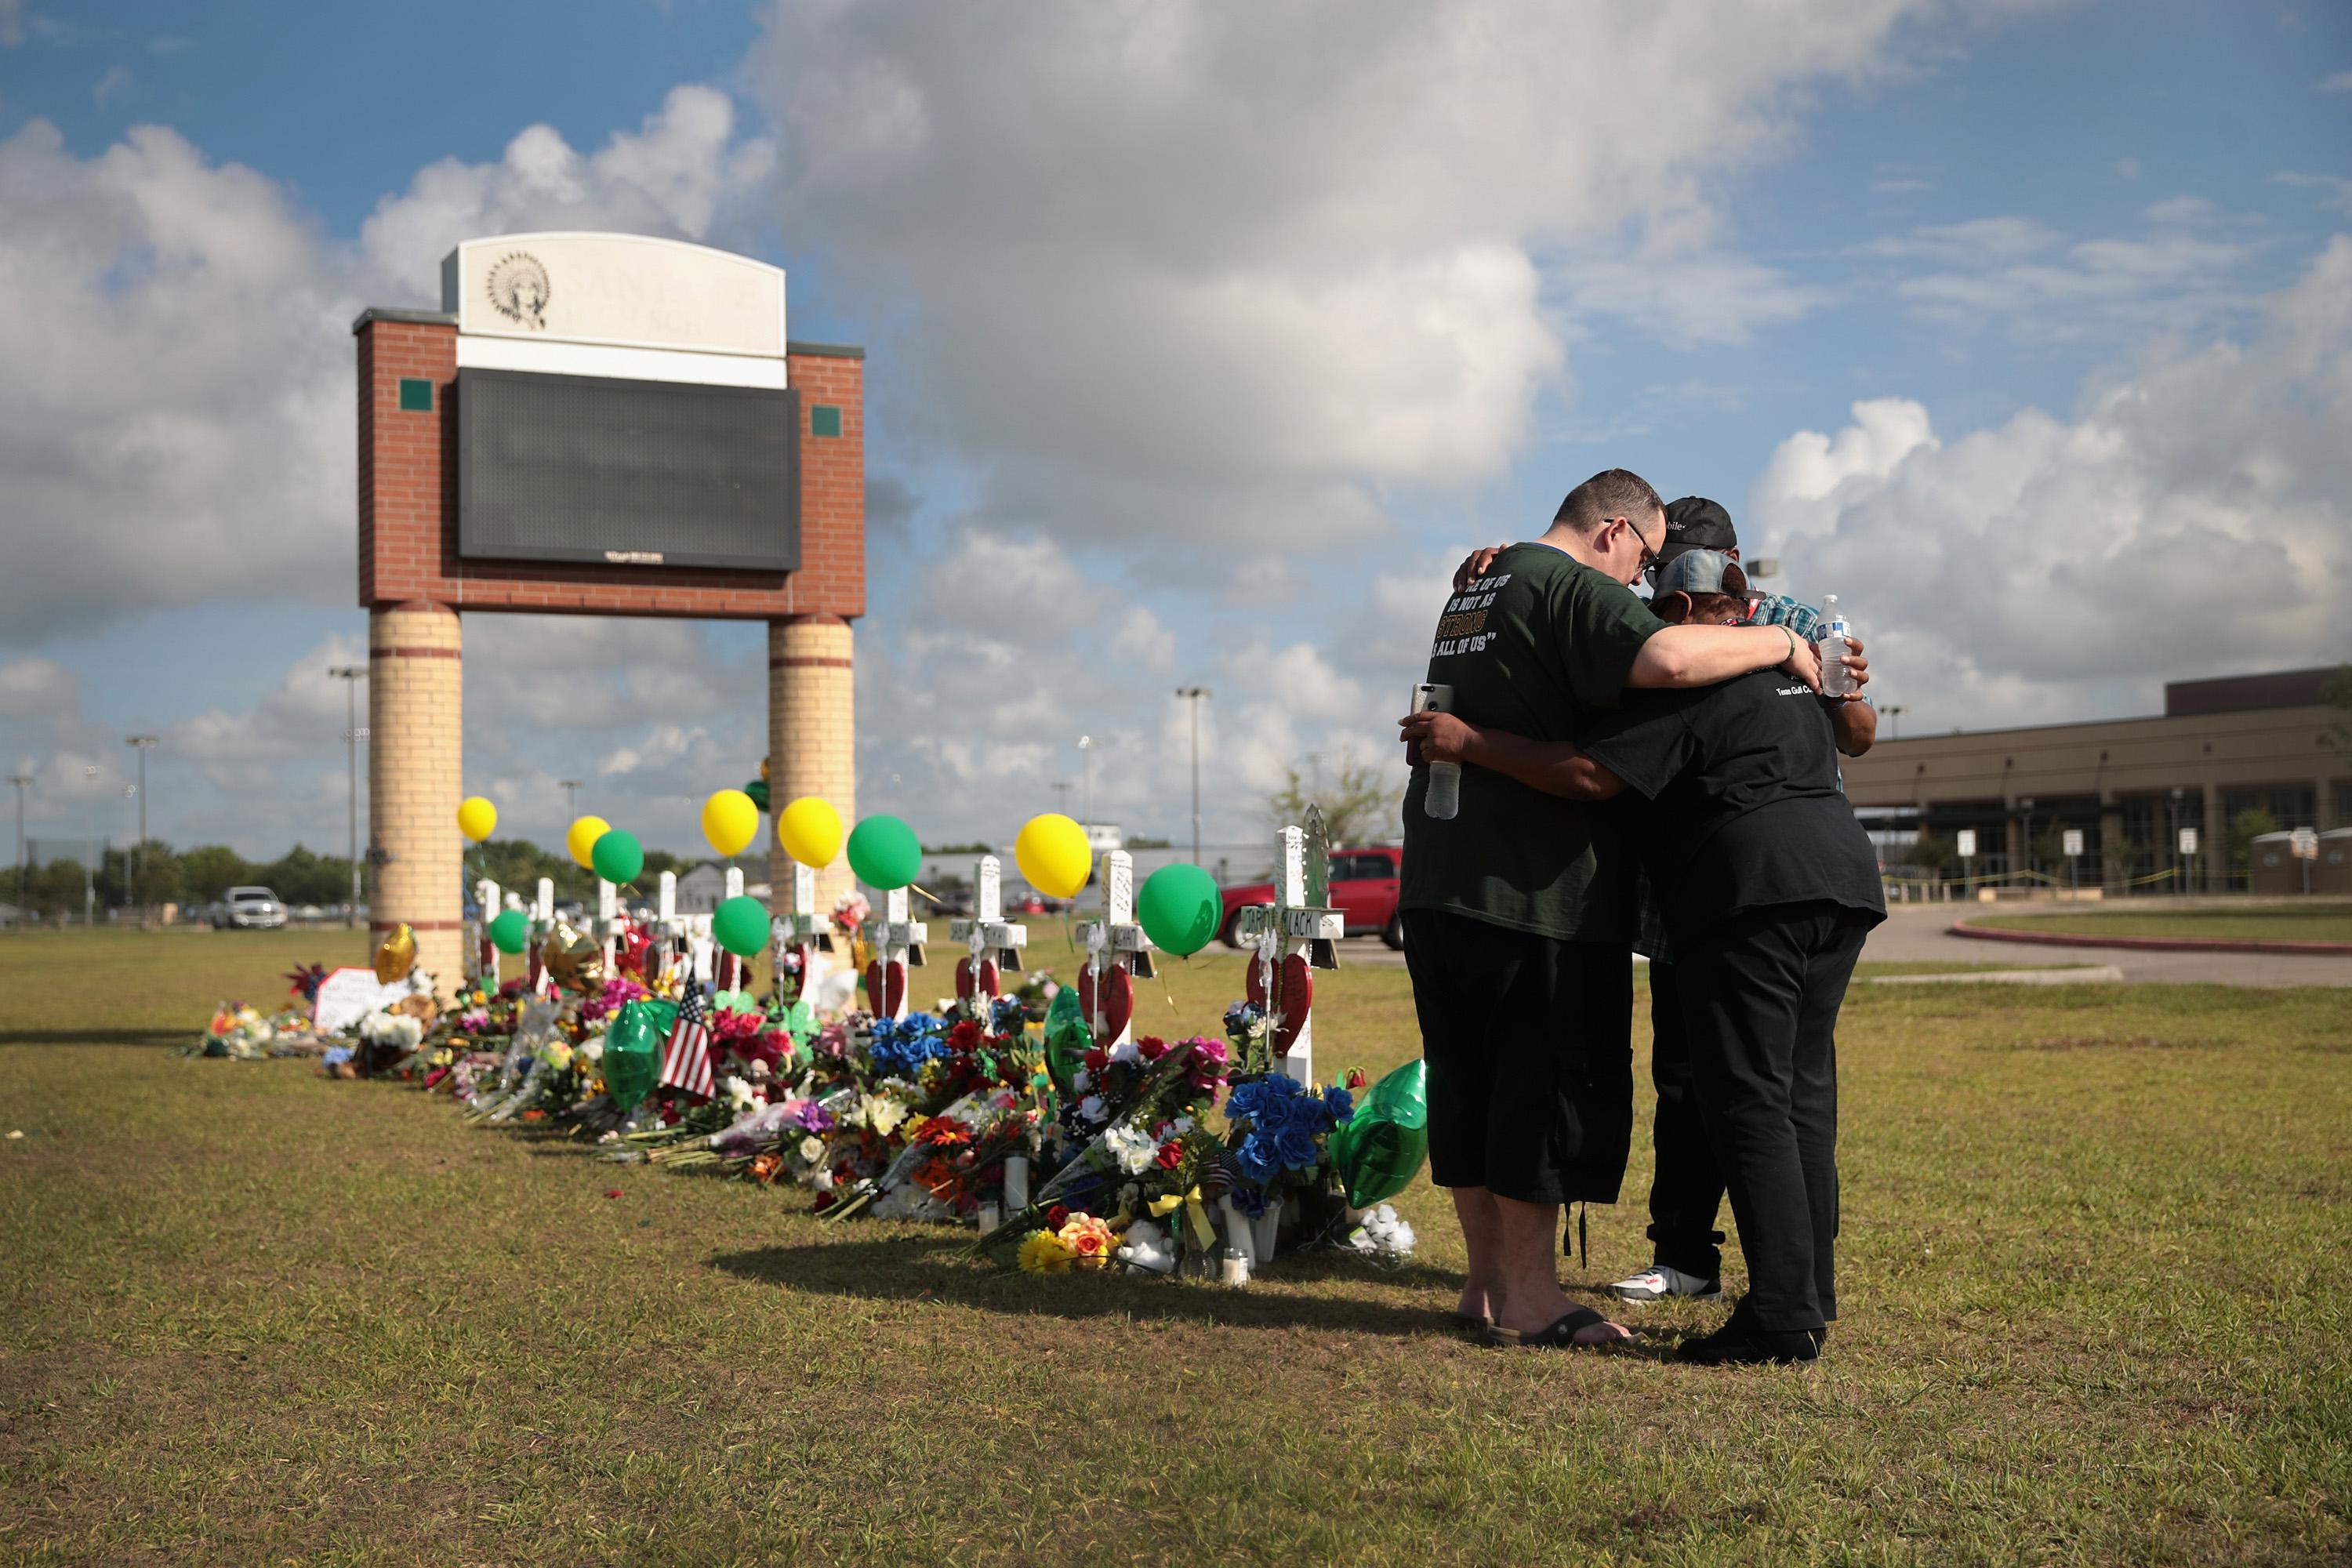 Mourners pray at a memorial in front of Santa Fe High School on May 22, 2018 in Santa Fe, Texas.